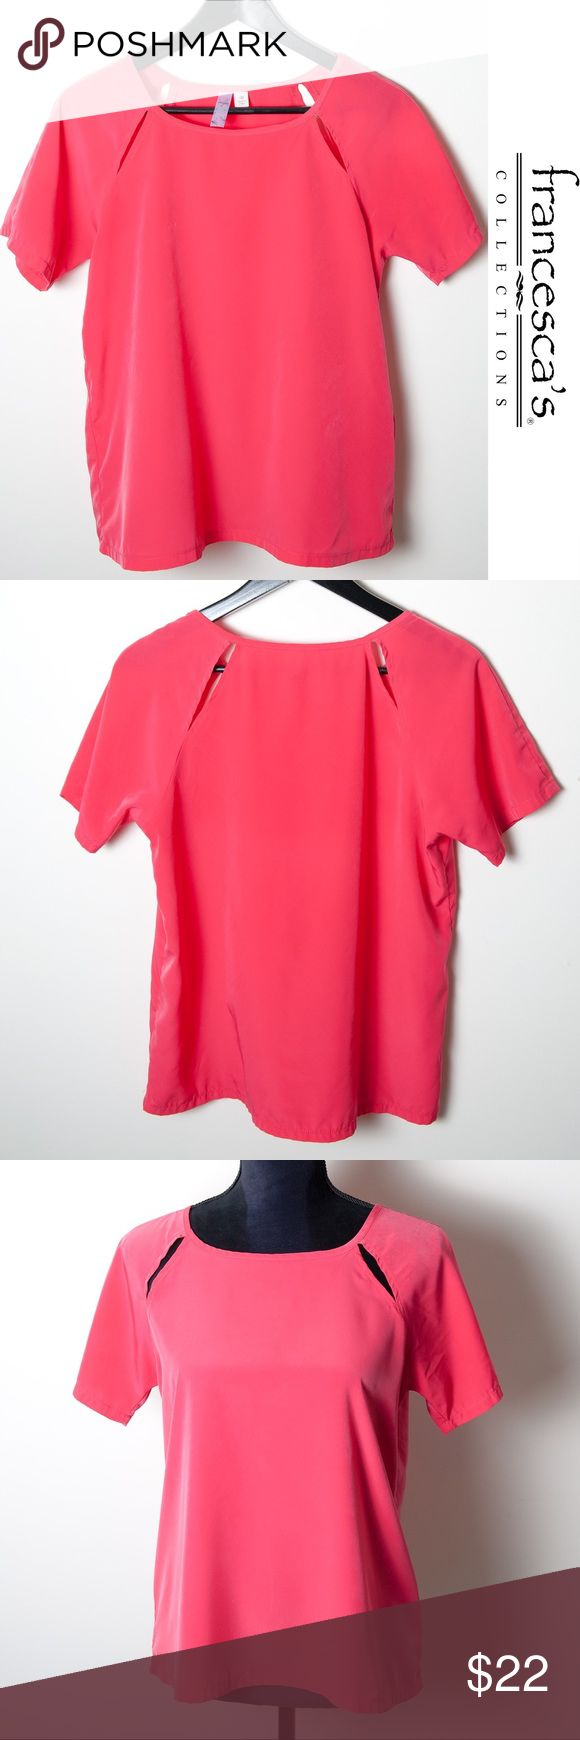 Franchesca's Alya Pink Short Sleeve Top Cutout Med Fantastic preloved condition Alya top from Francesca's, size medium. Bright pink top with cutouts on front and back. Short sleeve. Francesca's Collections Tops Blouses